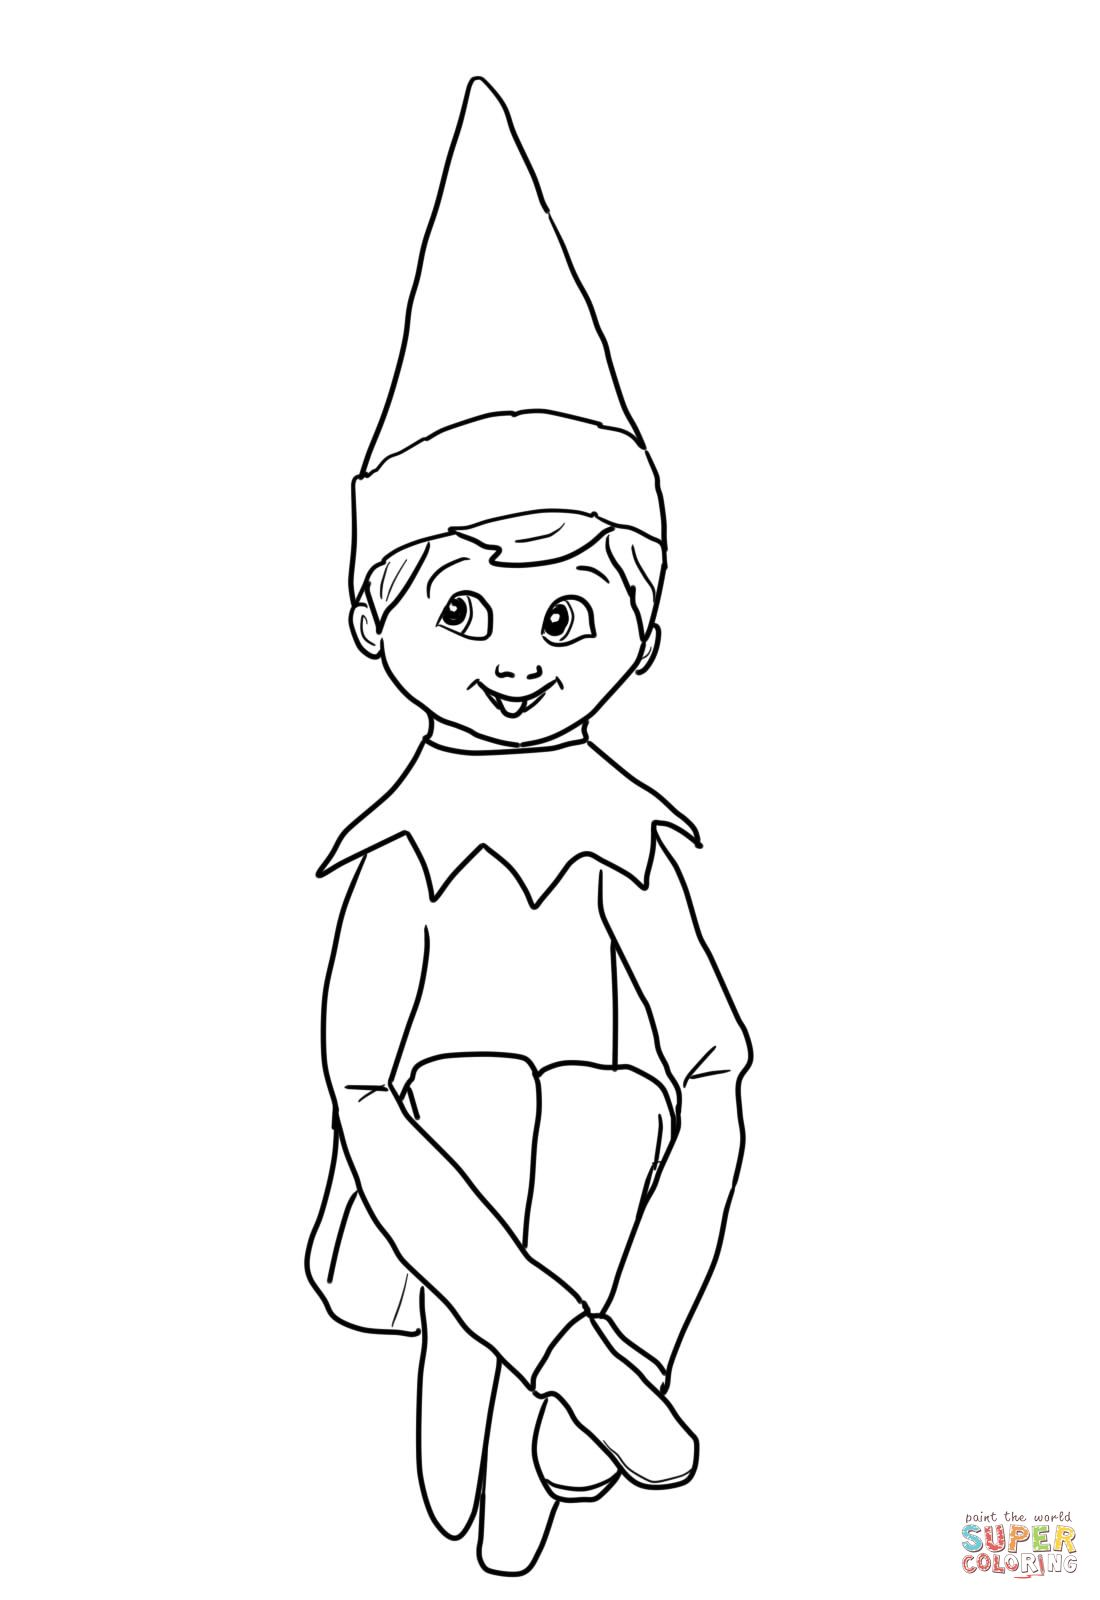 Santa In Australia Coloring Sheets With Girl Elf On The Shelf Pages You Might Also Be Interested